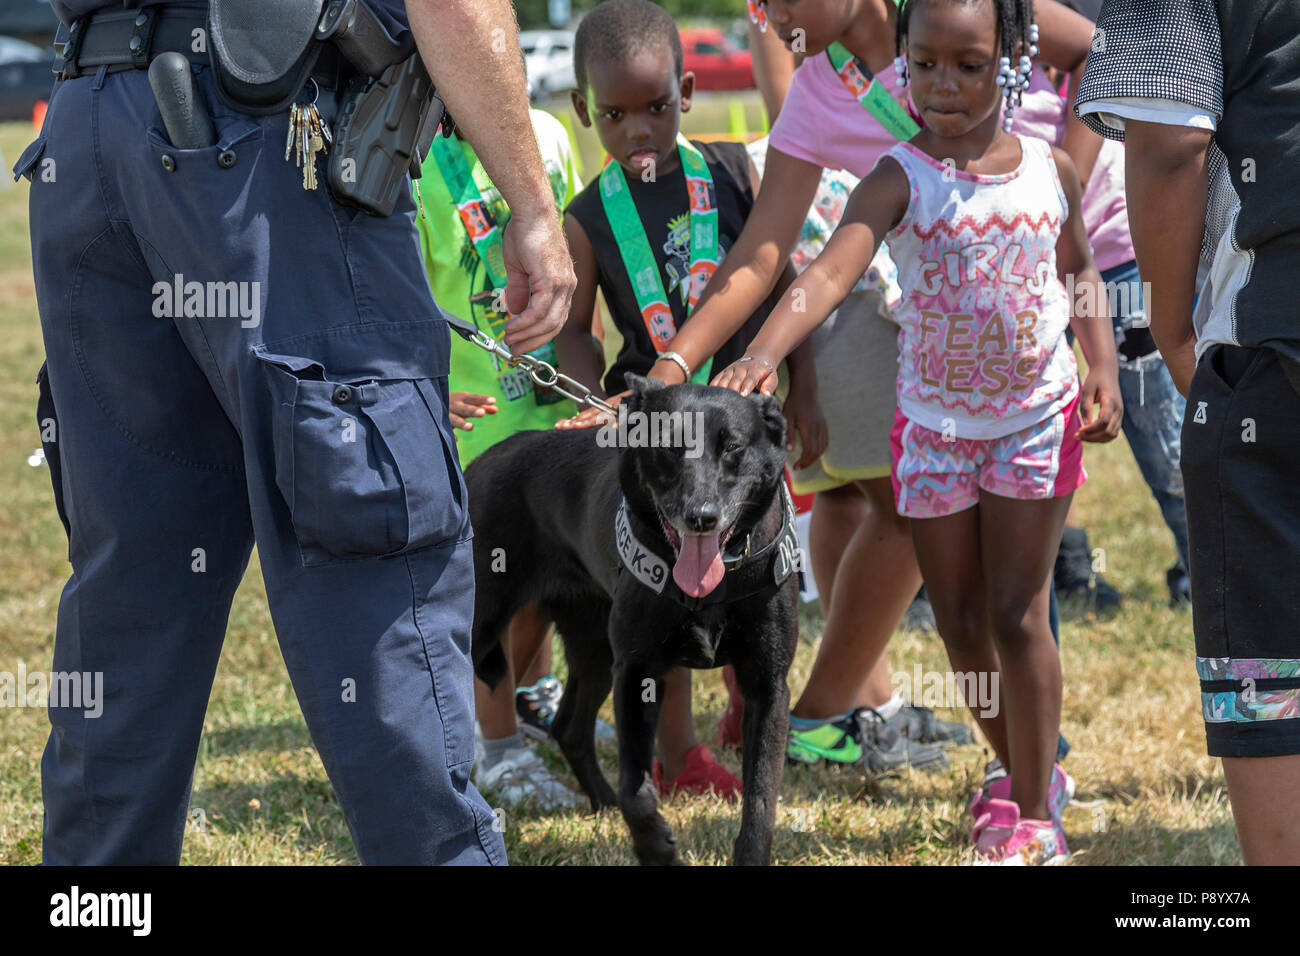 Detroit, Michigan - A U.S. Customs and Border Protection officer shows his dog, Buddy, to children at Metro Detroit Youth Day. Buddy is trained to det - Stock Image